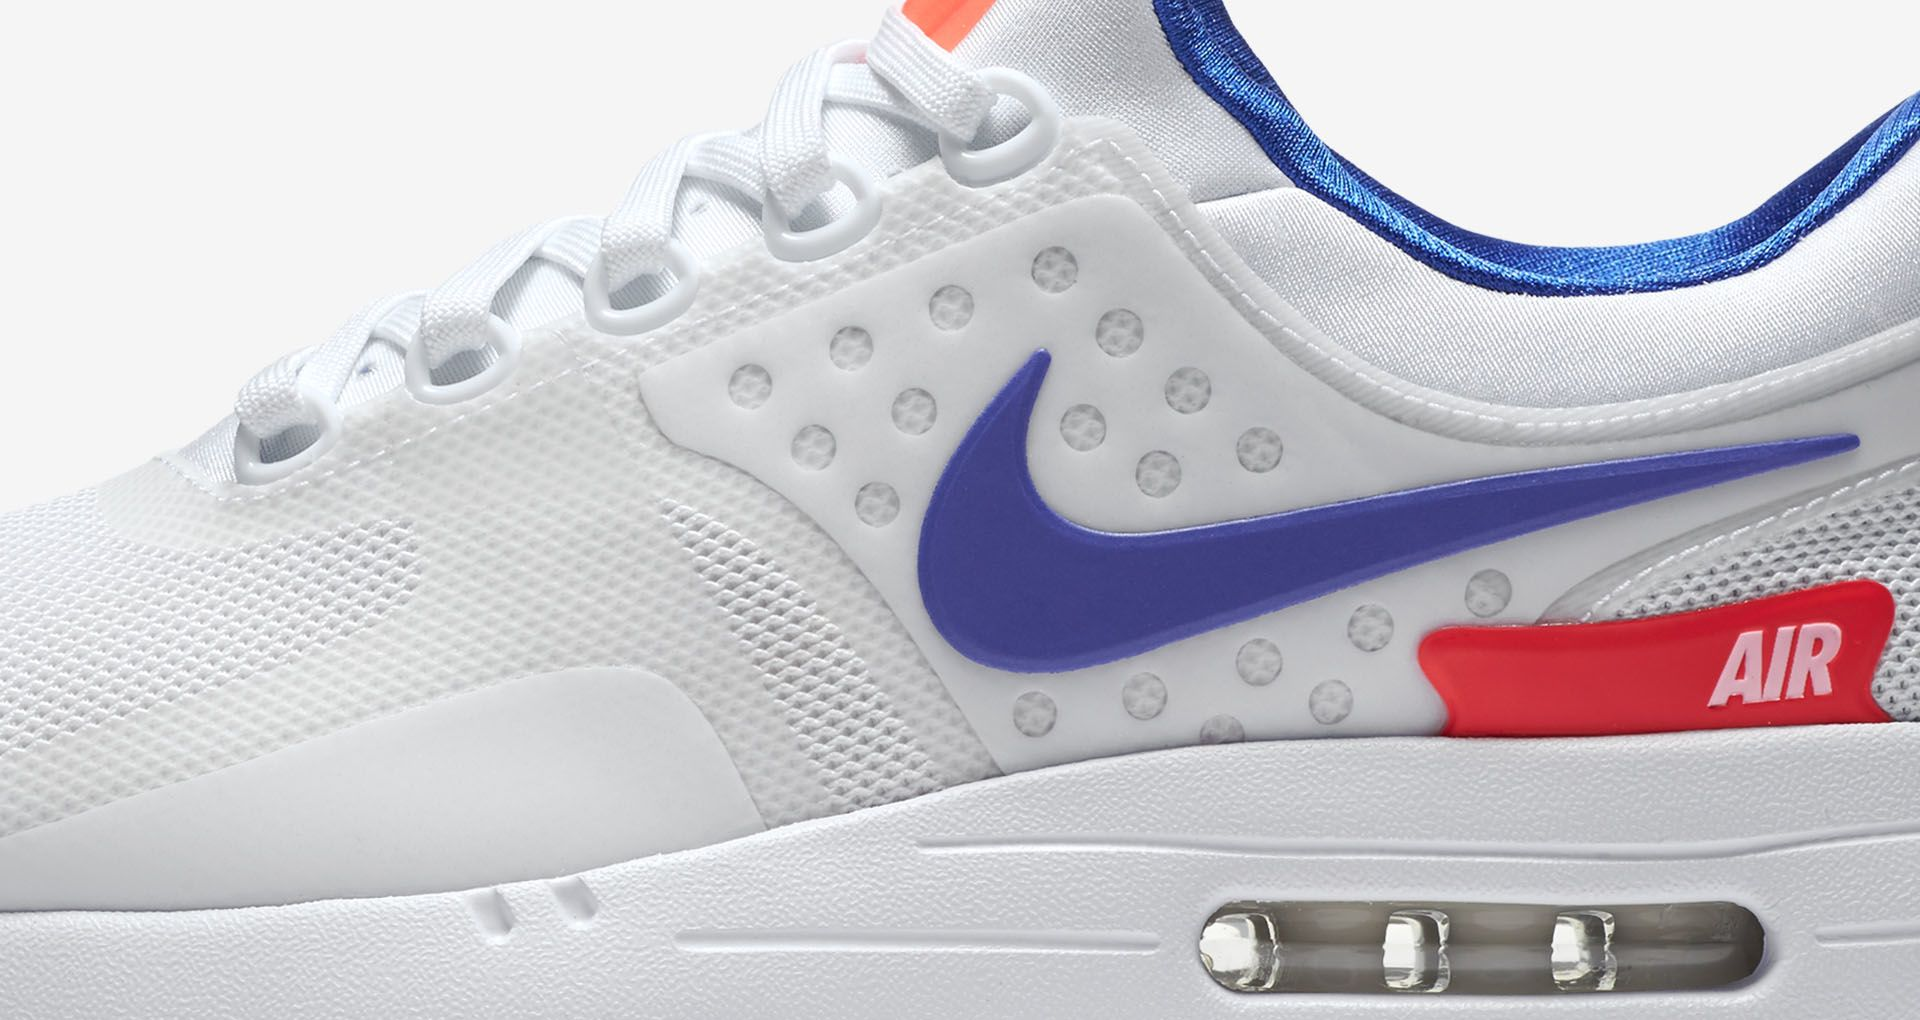 Nike Air Max Zero Ultramarine